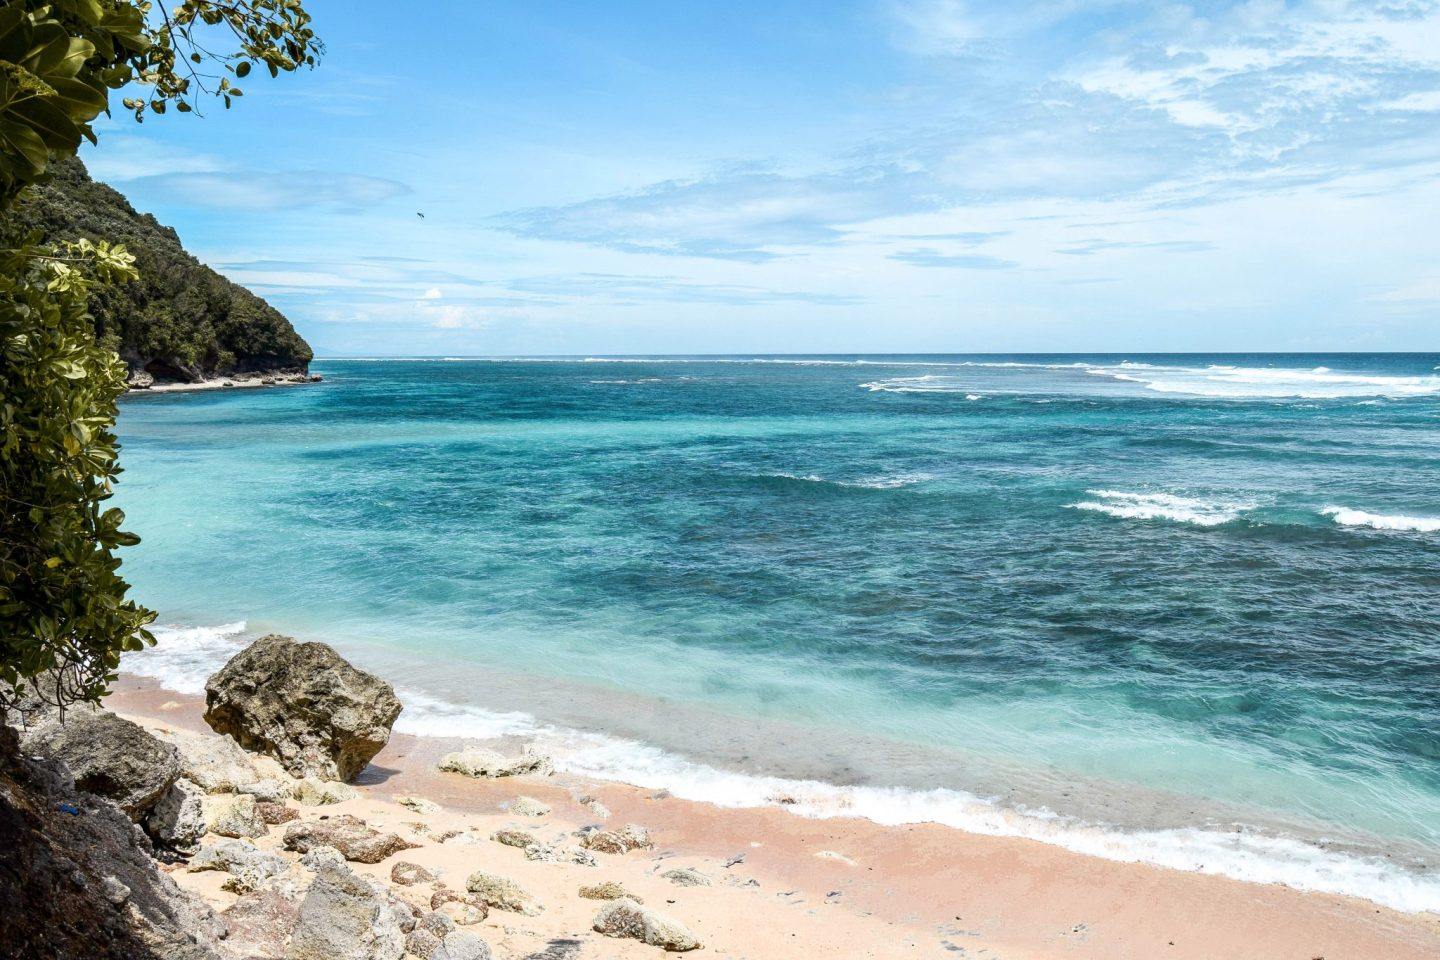 Wanderers & Warriors - Green Bowl Beach - Best Bali Beaches & Where To Find Them - best beach in bali - Uluwatu beaches